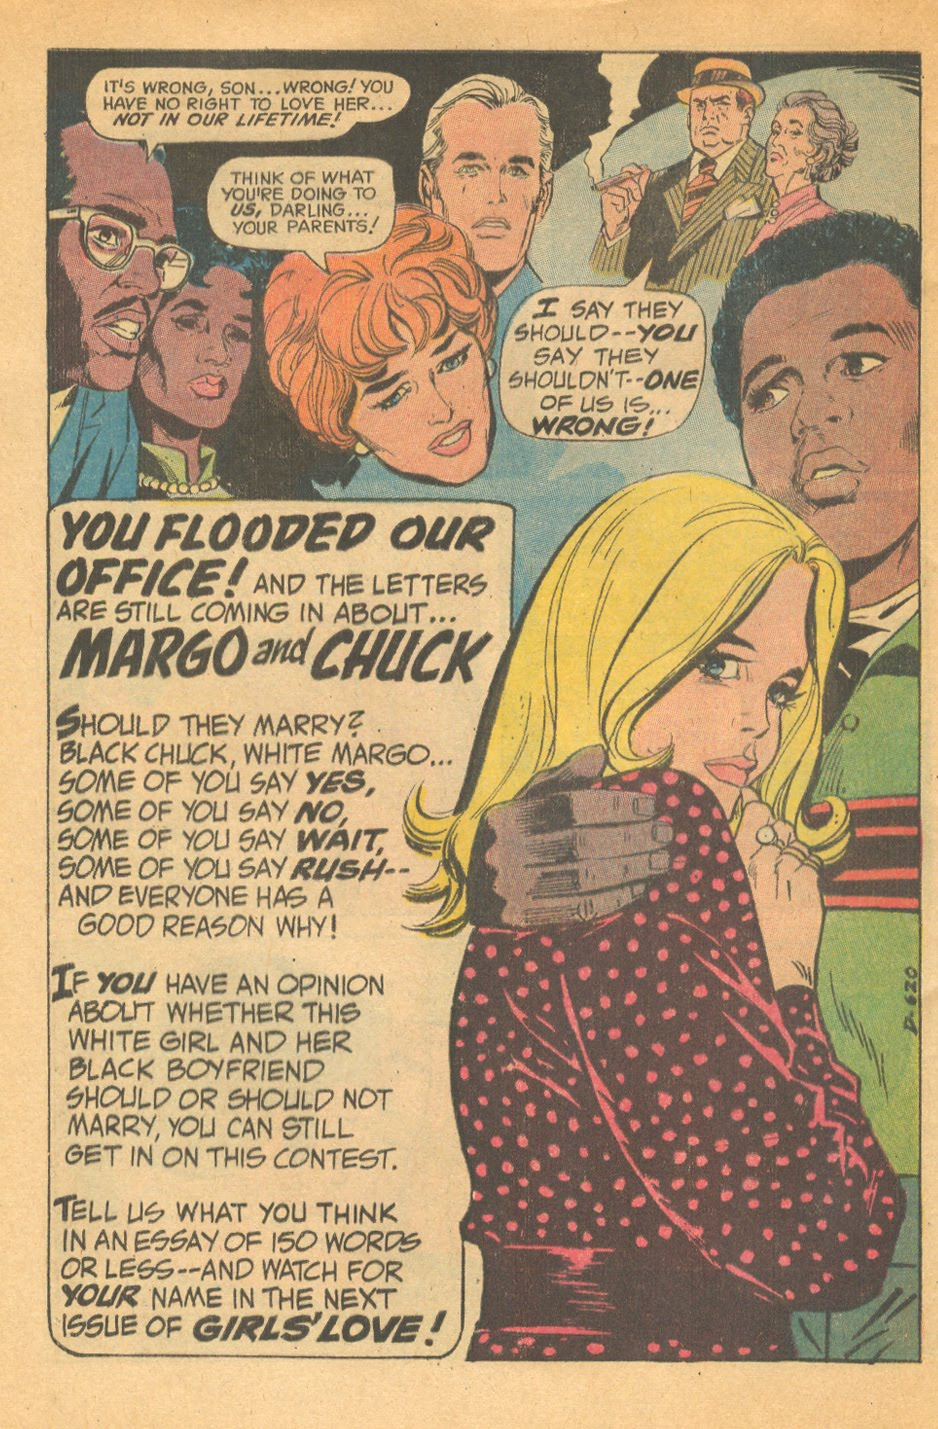 Interracial romance relationship in romance comic books DC Comics